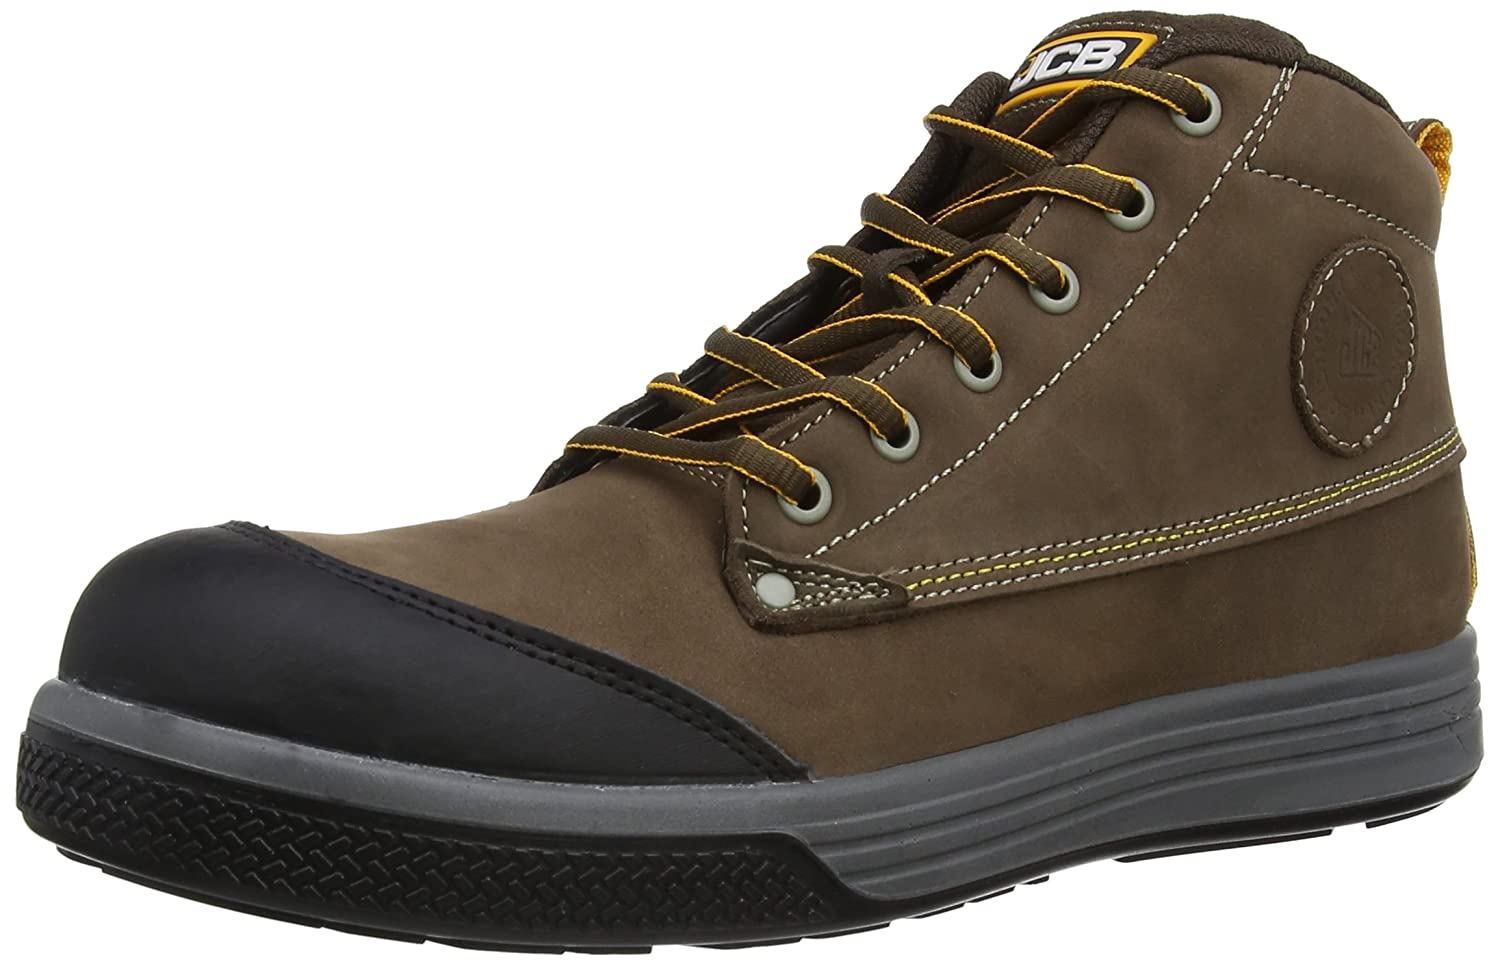 dc75b1fa480 JCB Mens 4CX Safety Shoes 4CX/T Brown 6 UK, 39 EU Extra Wide - EN safety  certified